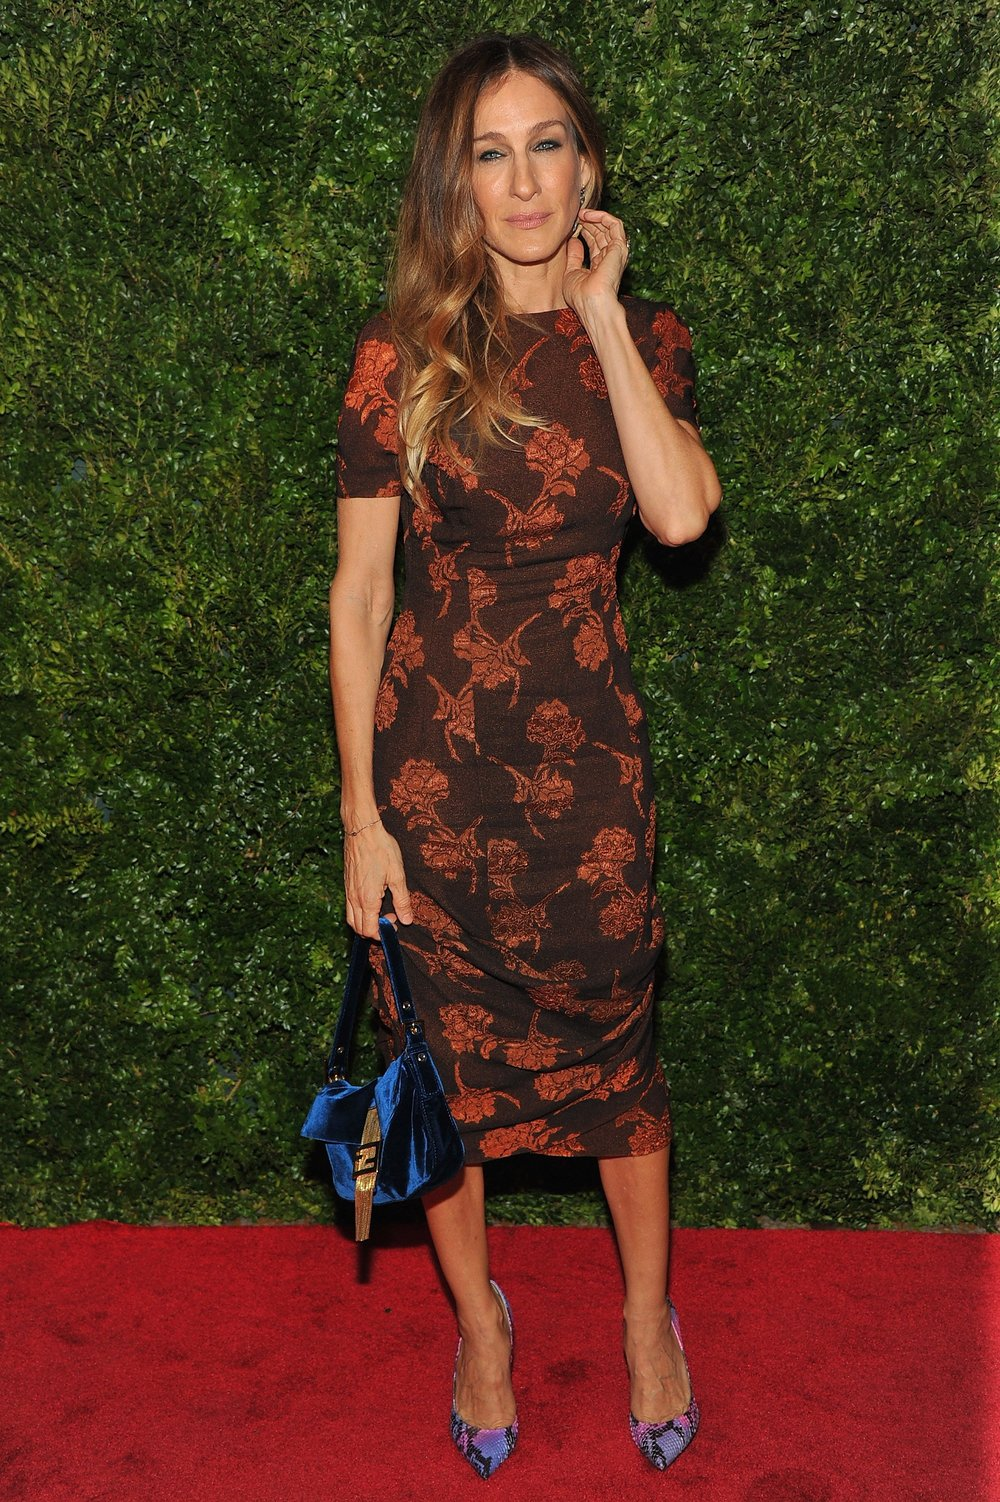 SARAH JESSICA PARKER in Vintage Estevez from ALEXANDRA NEW YORK  Red Carpet, Premiere of HBO's